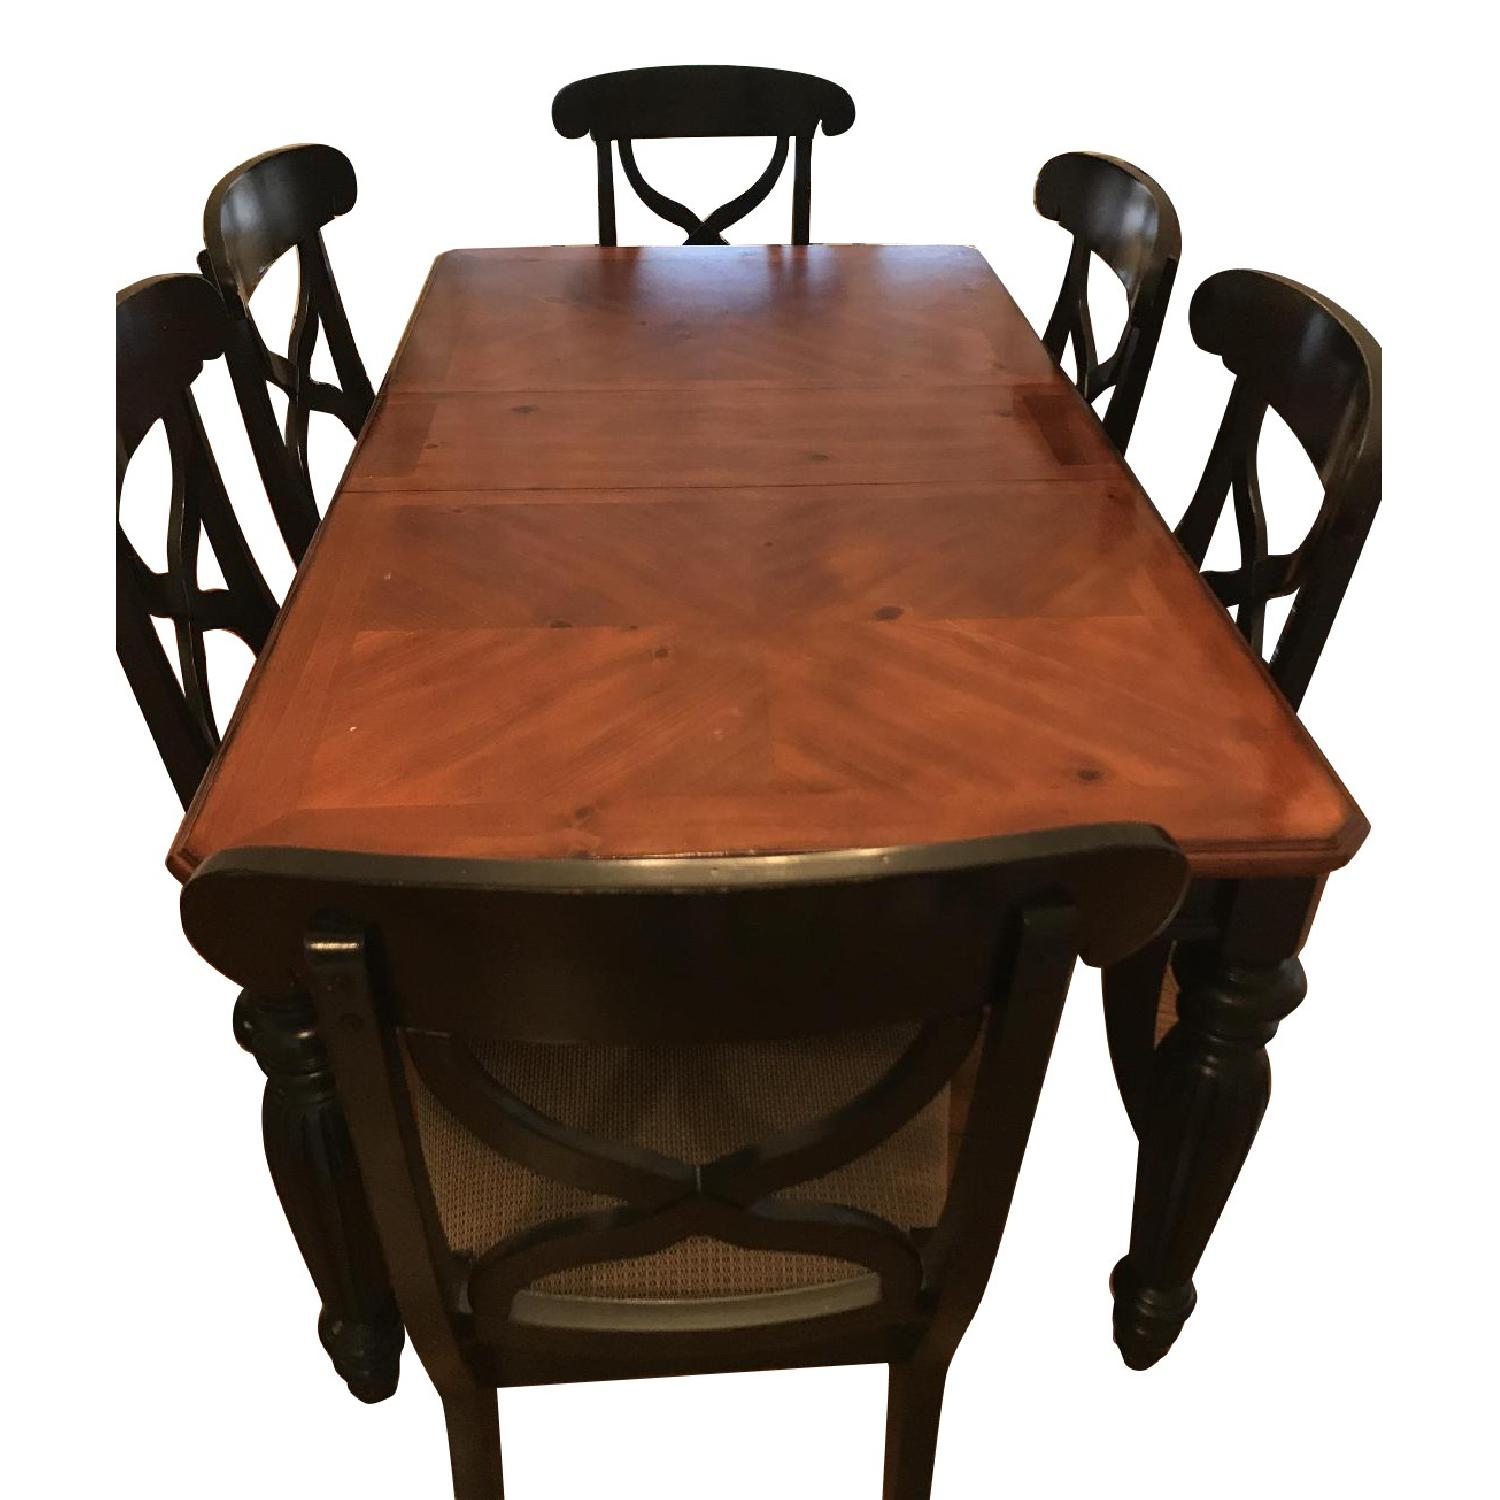 Brown/Black Wood Dining Table w/ 6 Chairs